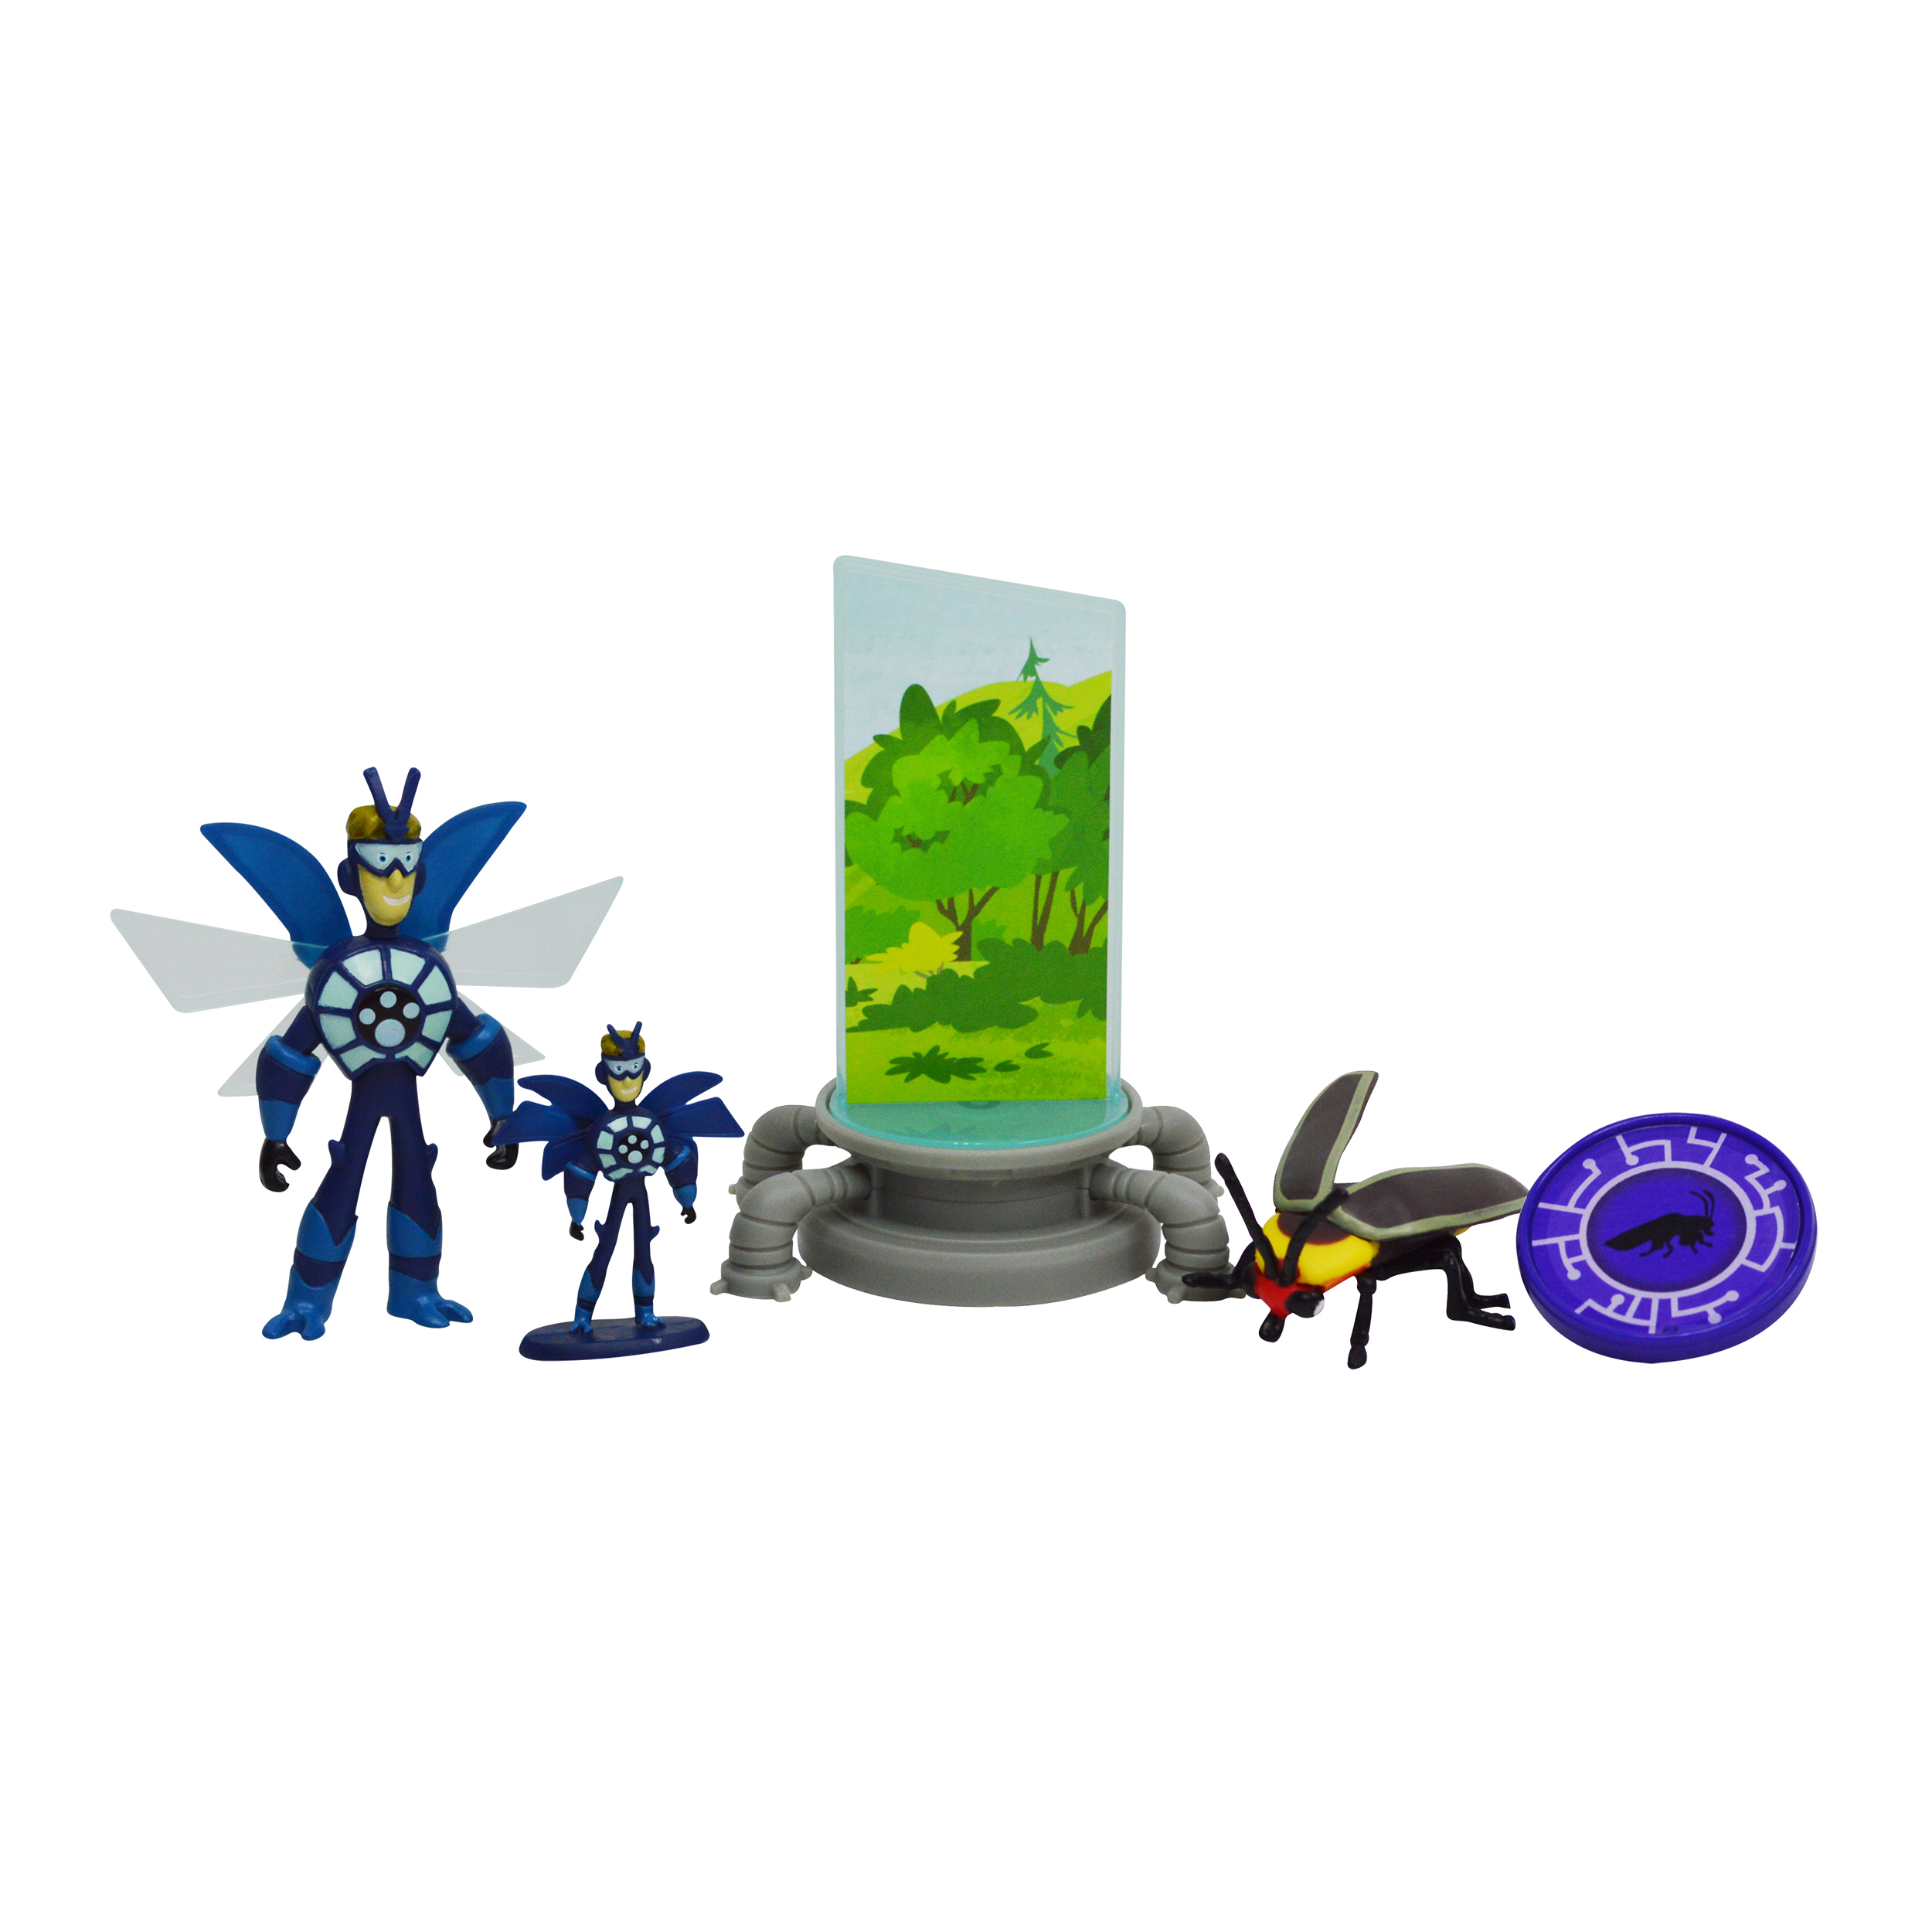 Wicked Cool Toys Wild Kratts Miniaturizer Deluxe Action Figure Set PartNumber: 004V008910577000P KsnValue: 8910577 MfgPartNumber: 188179